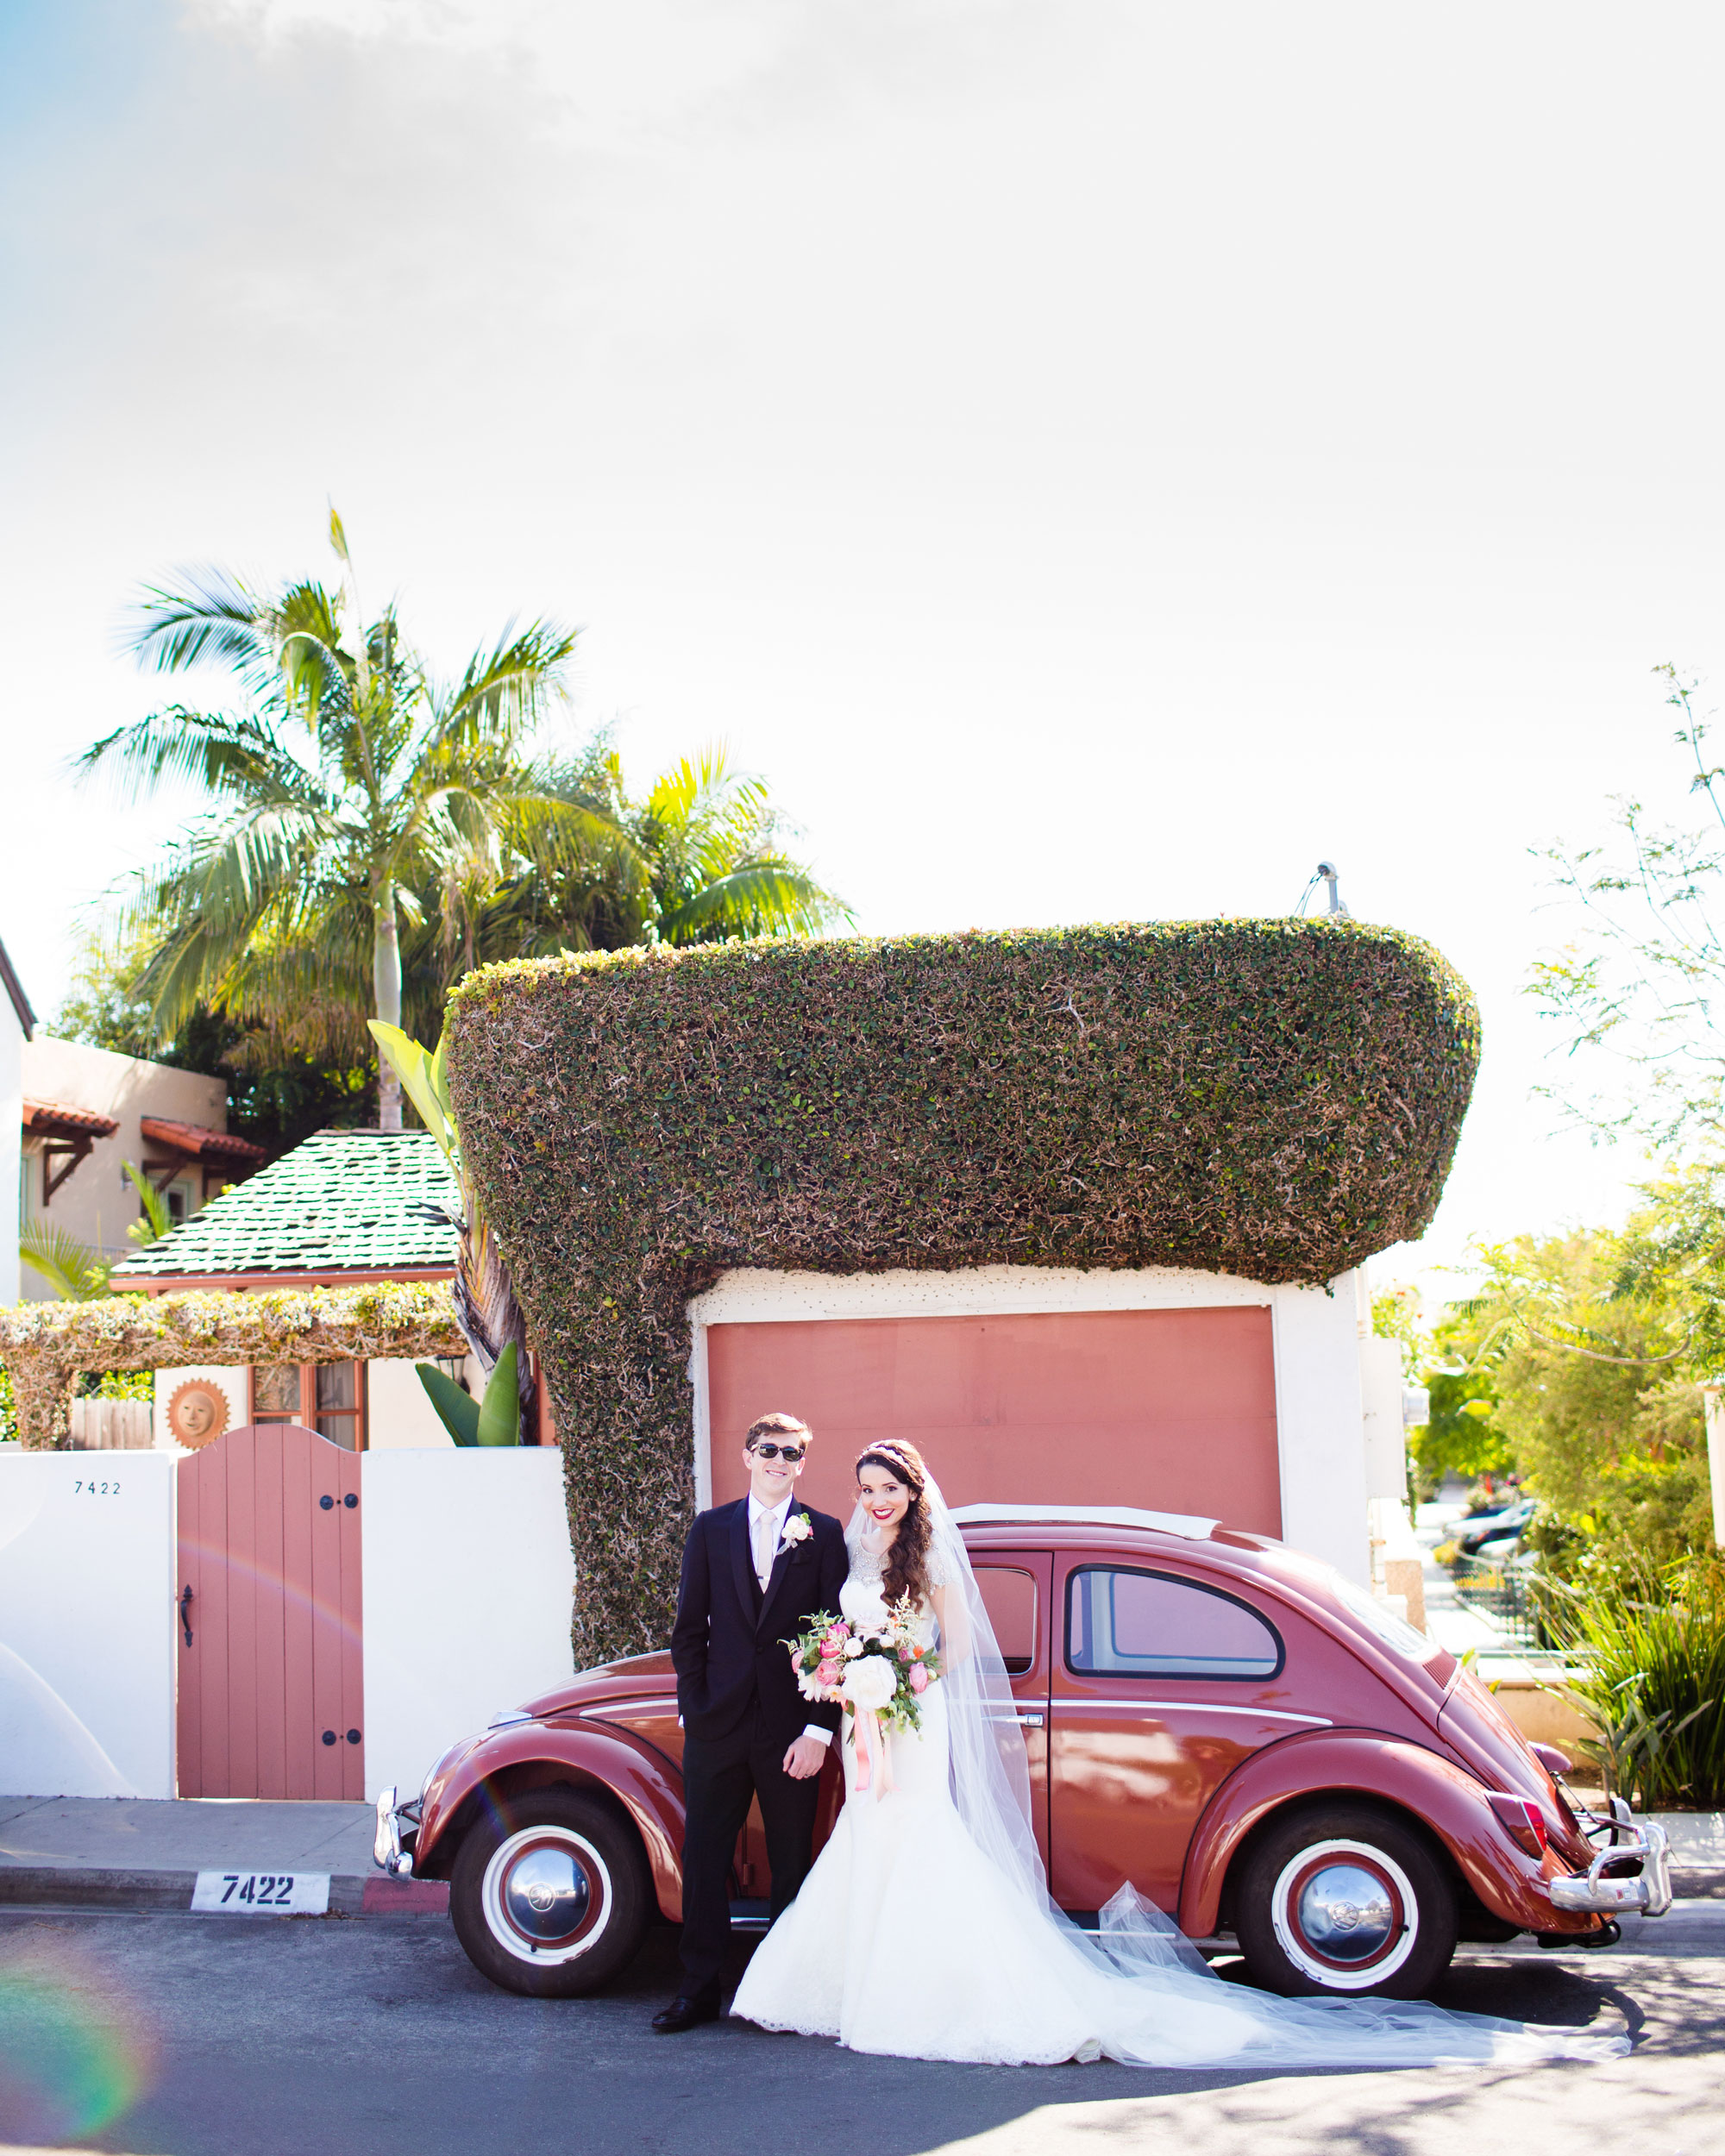 richelle-tom-wedding-car-545-s112855-0416.jpg